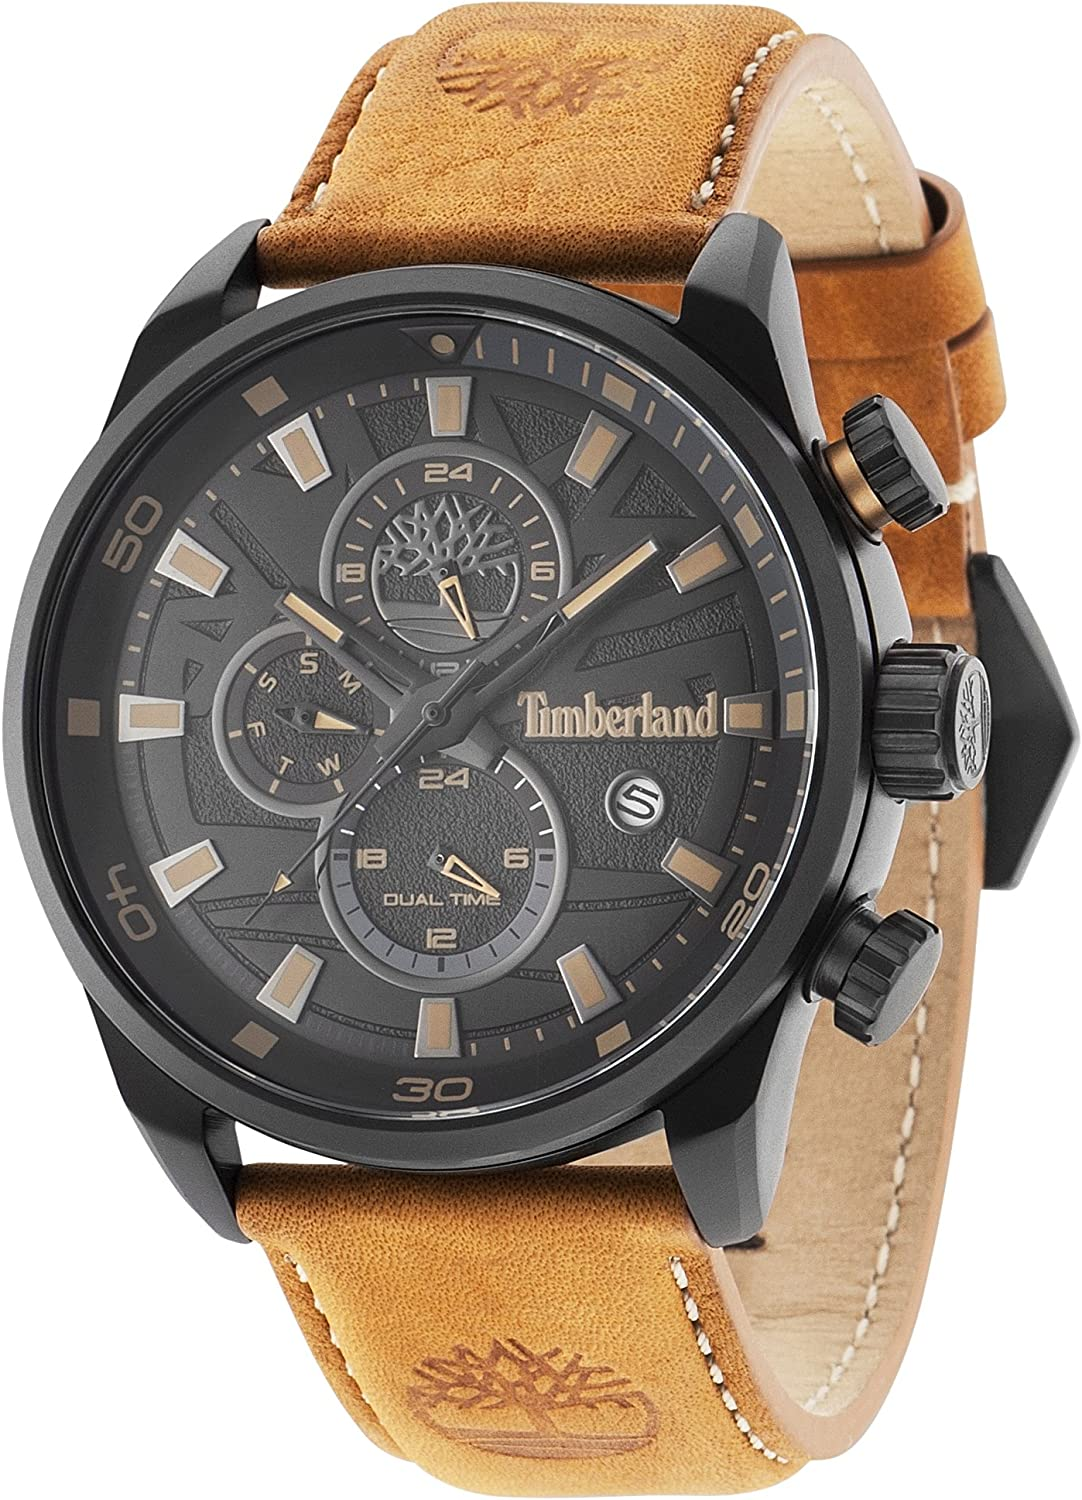 Extra Tectónico sistemático  Timberland Men's Quartz Watch with Black Dial Analogue Display and Dark  Brown Leather Strap 14816JLB/02: Amazon.co.uk: Watches